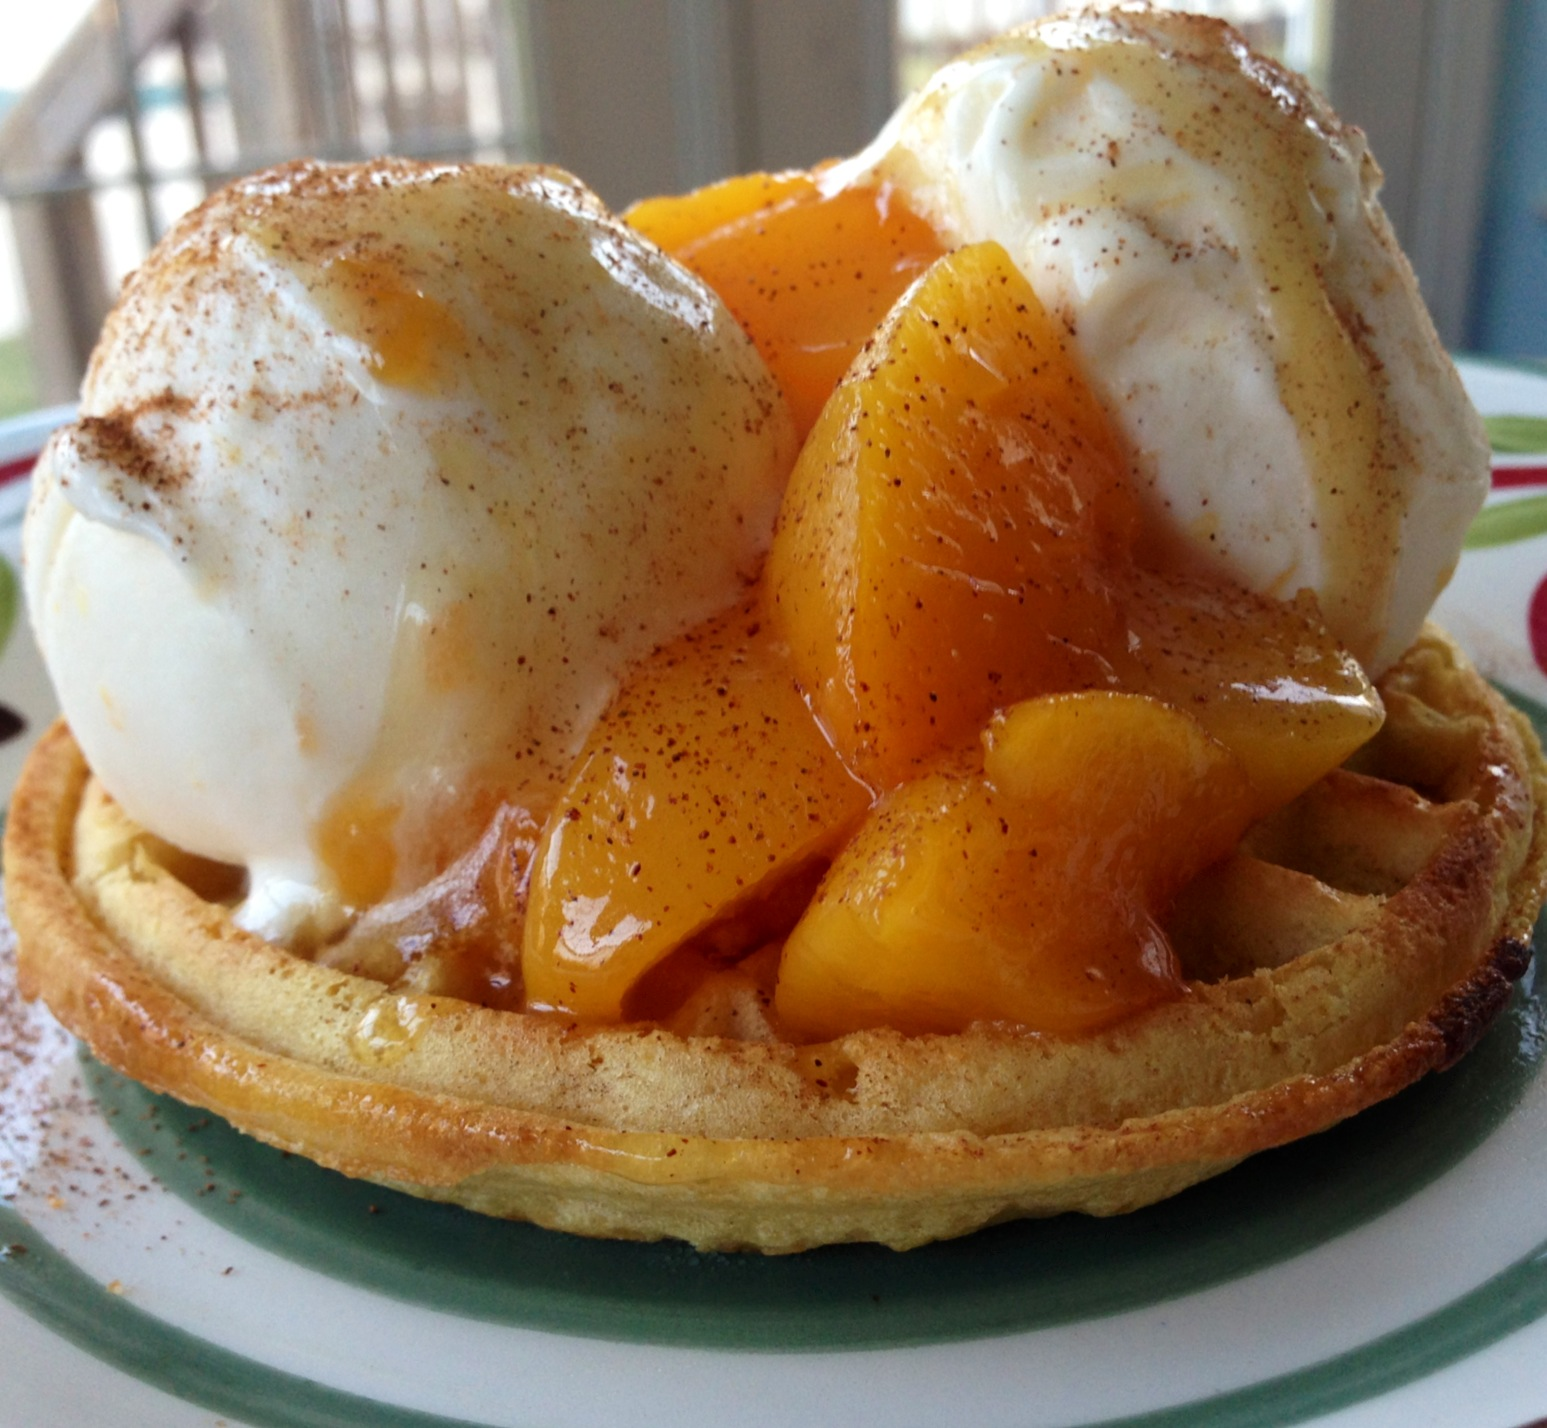 Fried Peaches and Cream on a Waffle